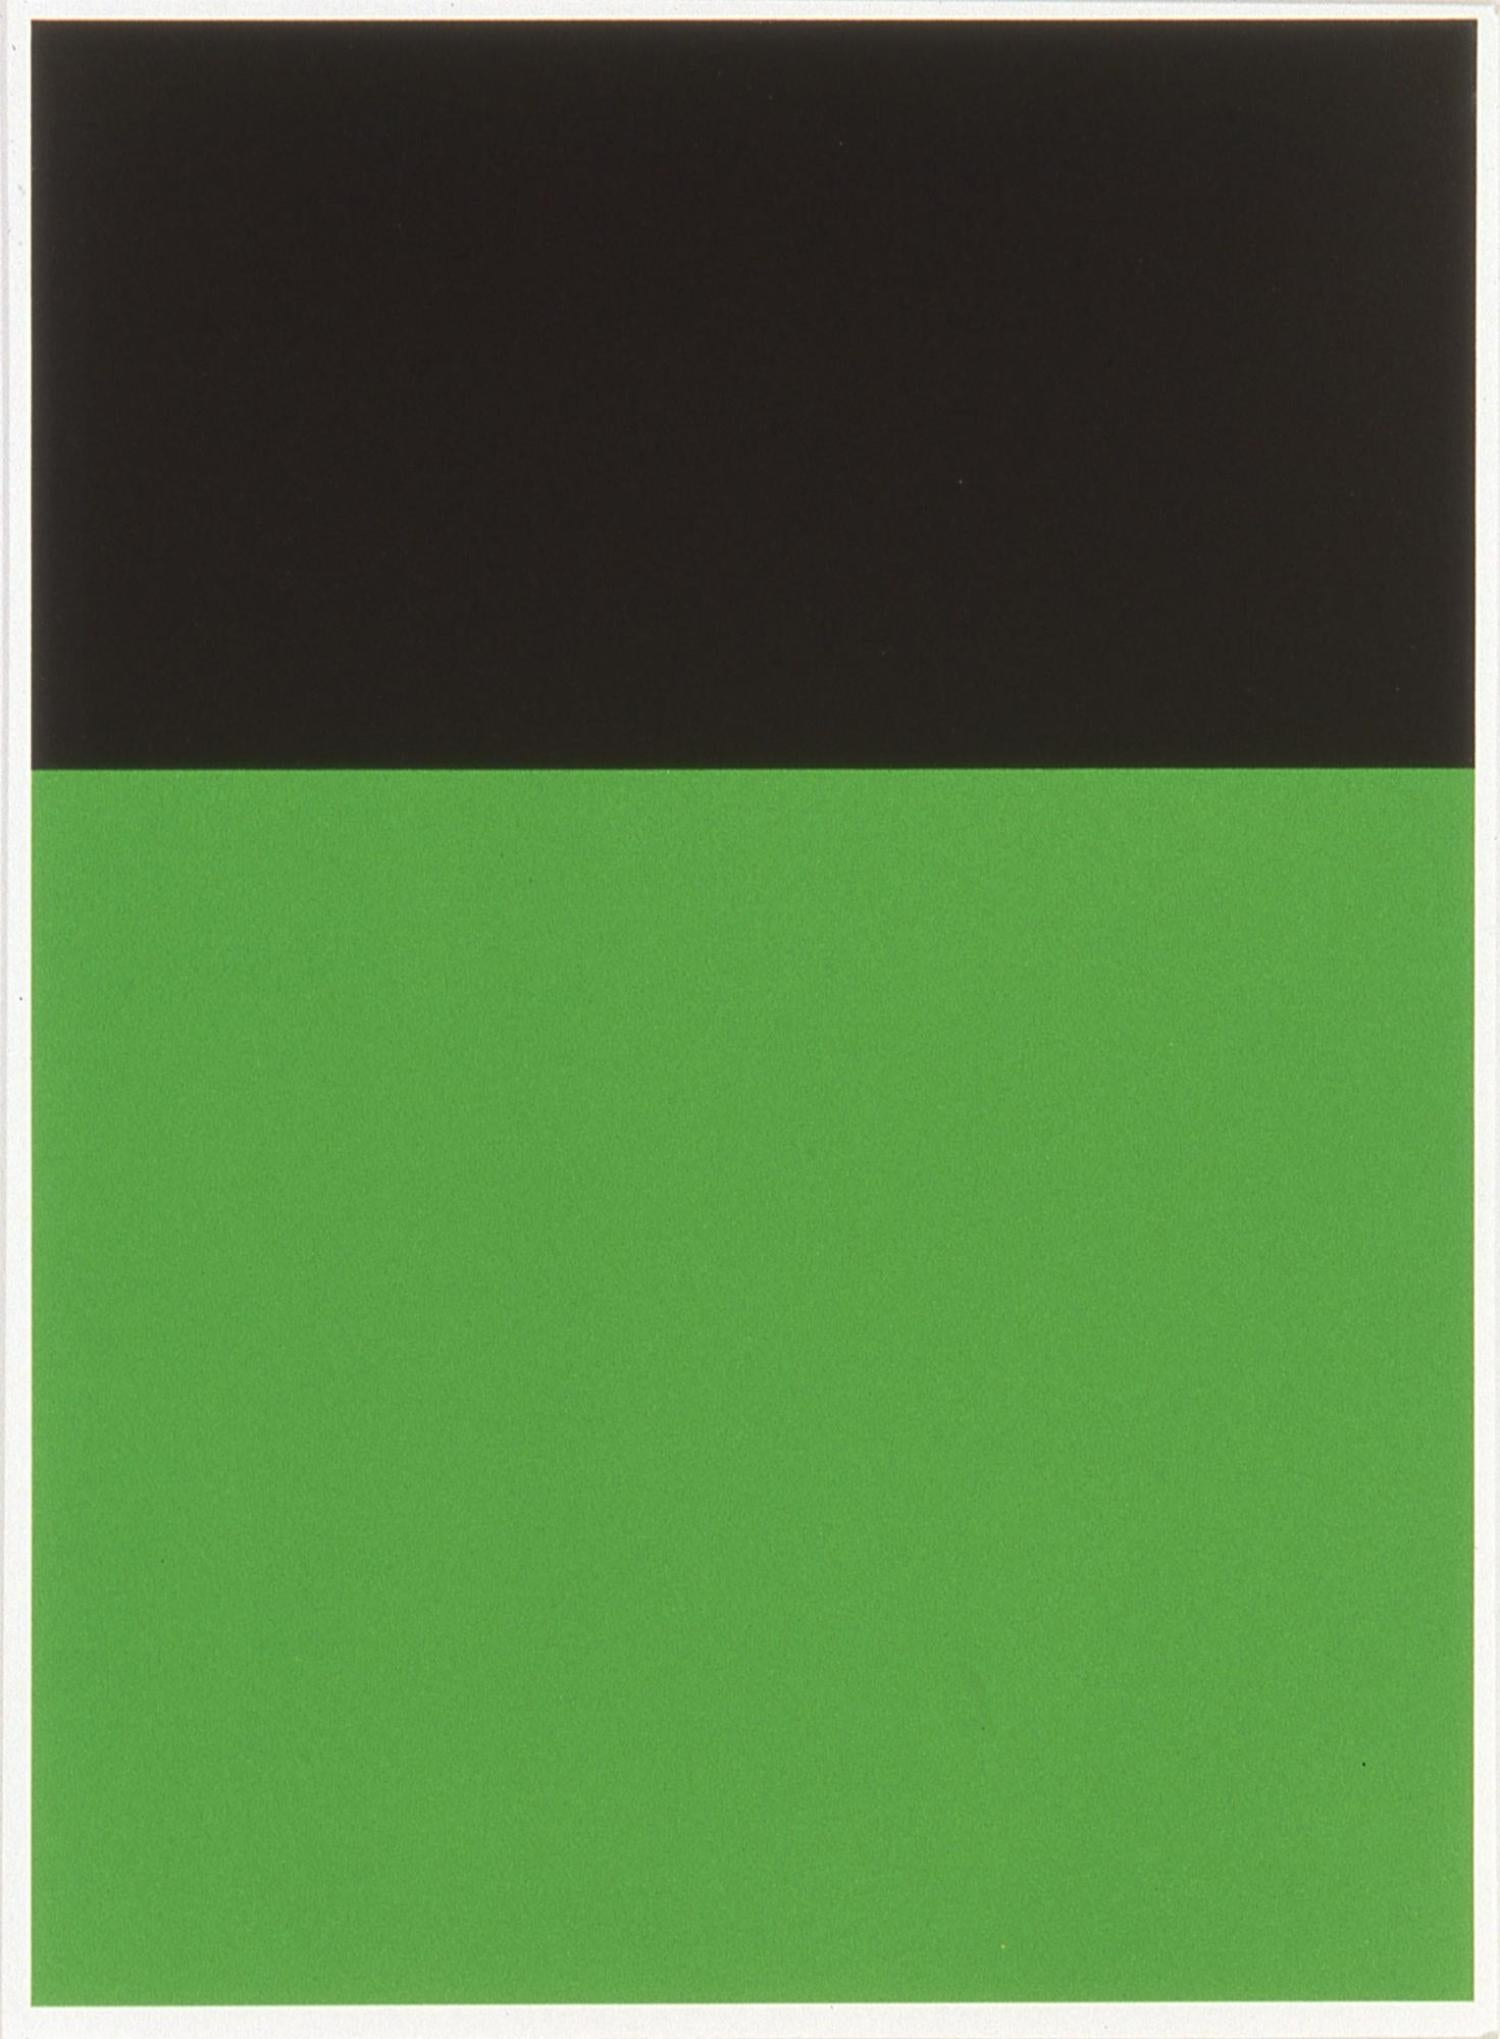 black and green fields